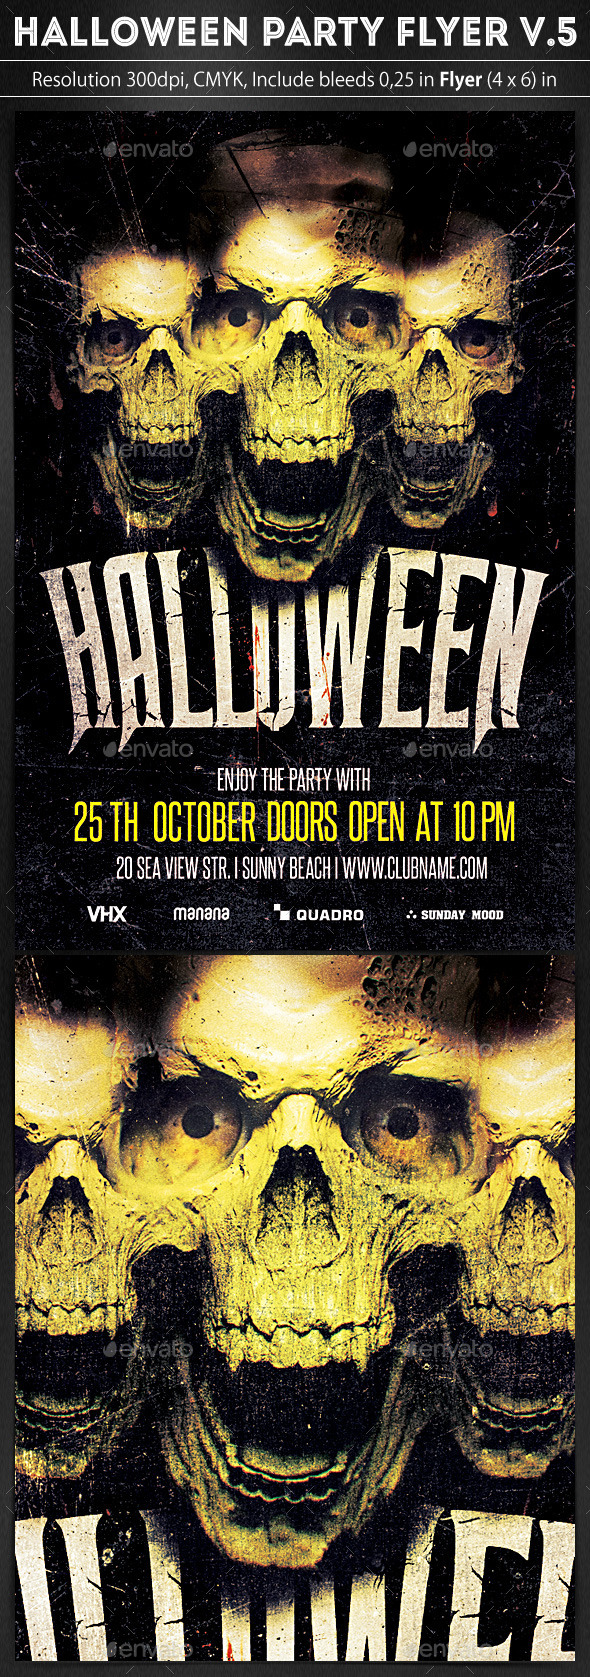 Halloween Party Flyer v.5